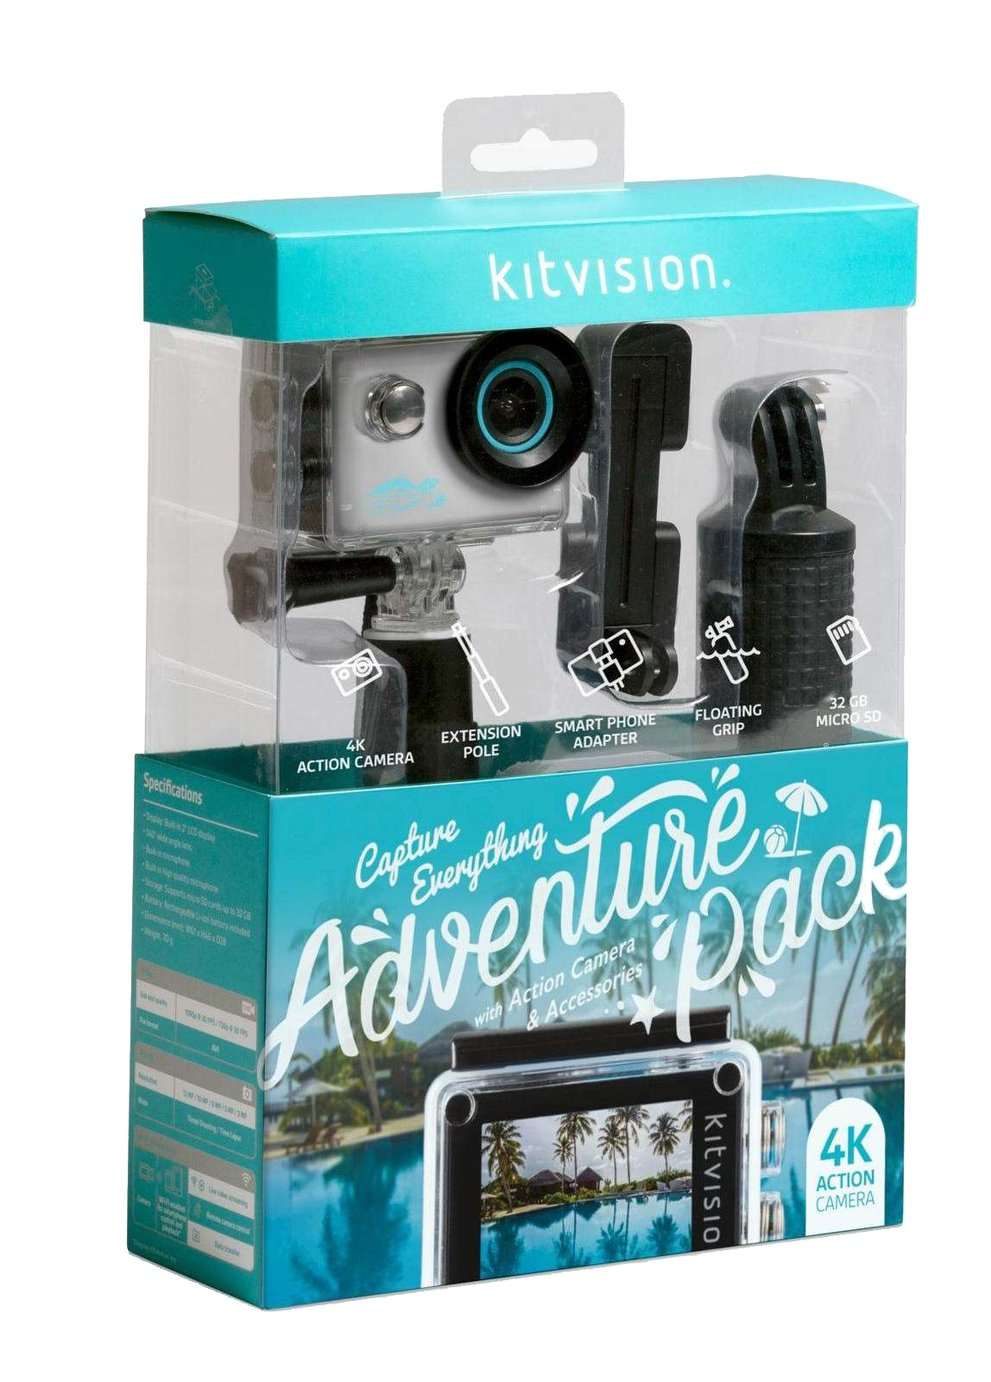 Kitvision 4K Adventure Pack Action Camera with Wi-Fi